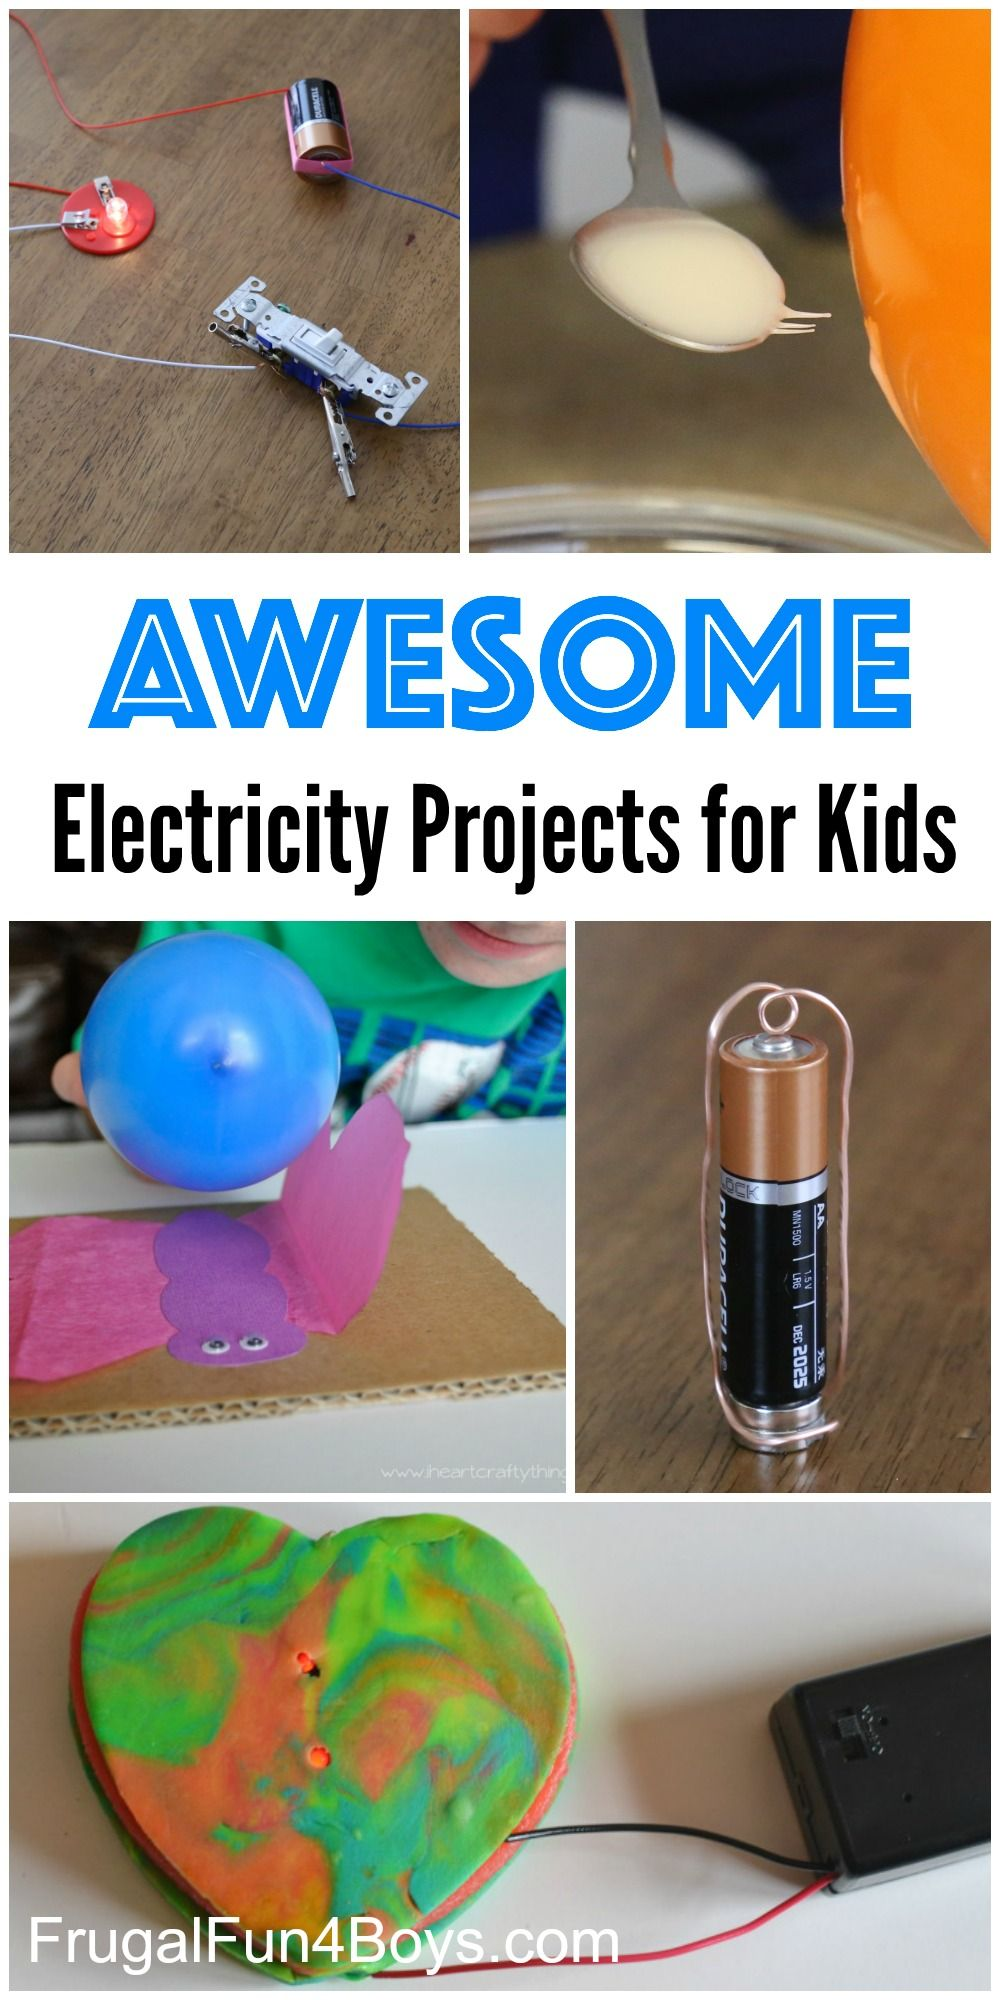 10 Awesome Electricity Projects For Kids Frugal Fun Boys And Application Circuits Explained In Simple Words Homemade Circuit Static Demonstrations Build A Show How Switch Works Electromagnetism More